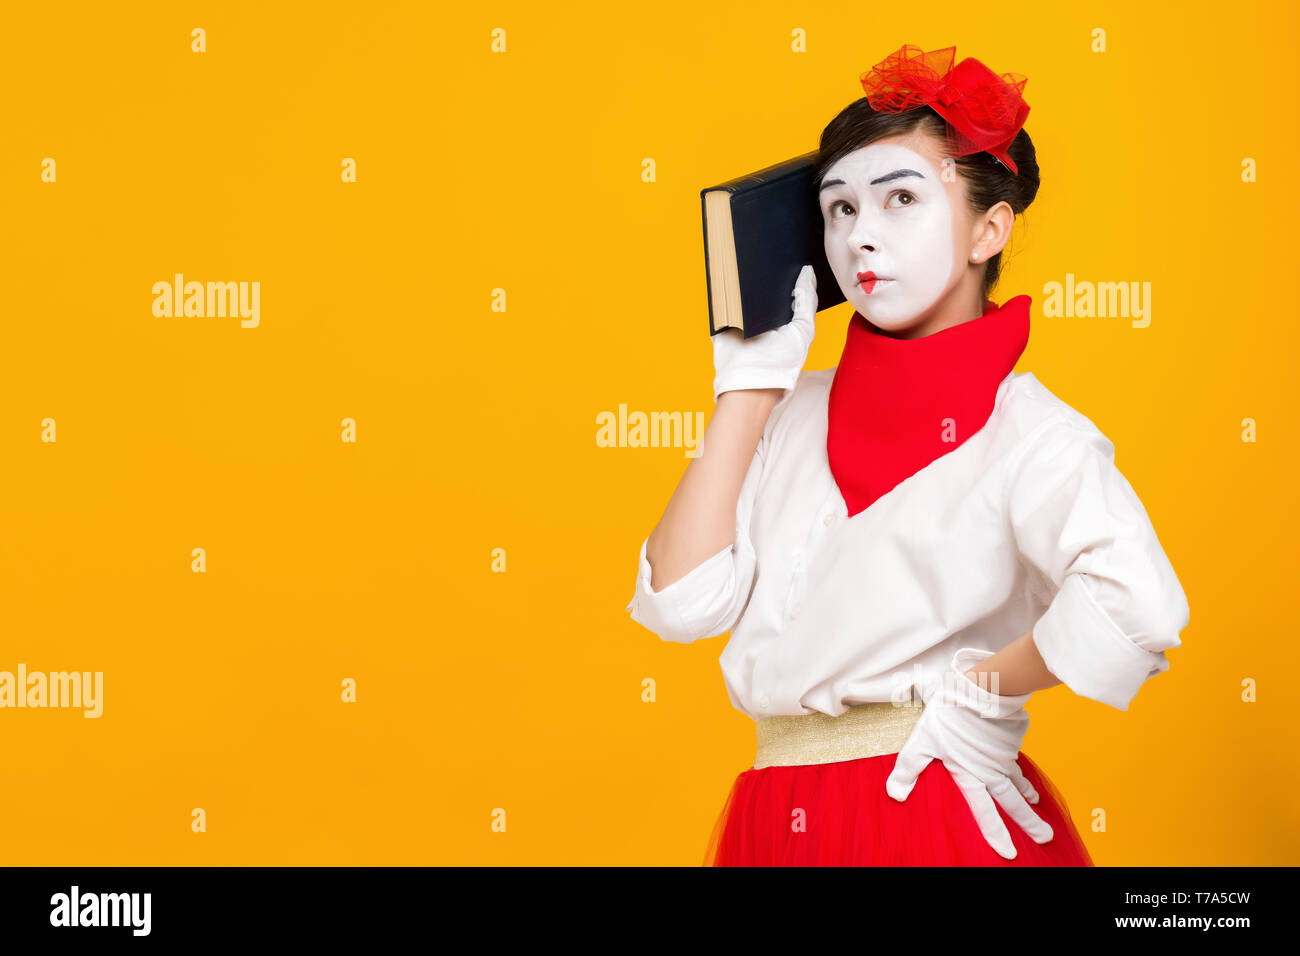 portrait of mime woman artist reading book isolated on yellow background . space for text - Stock Image